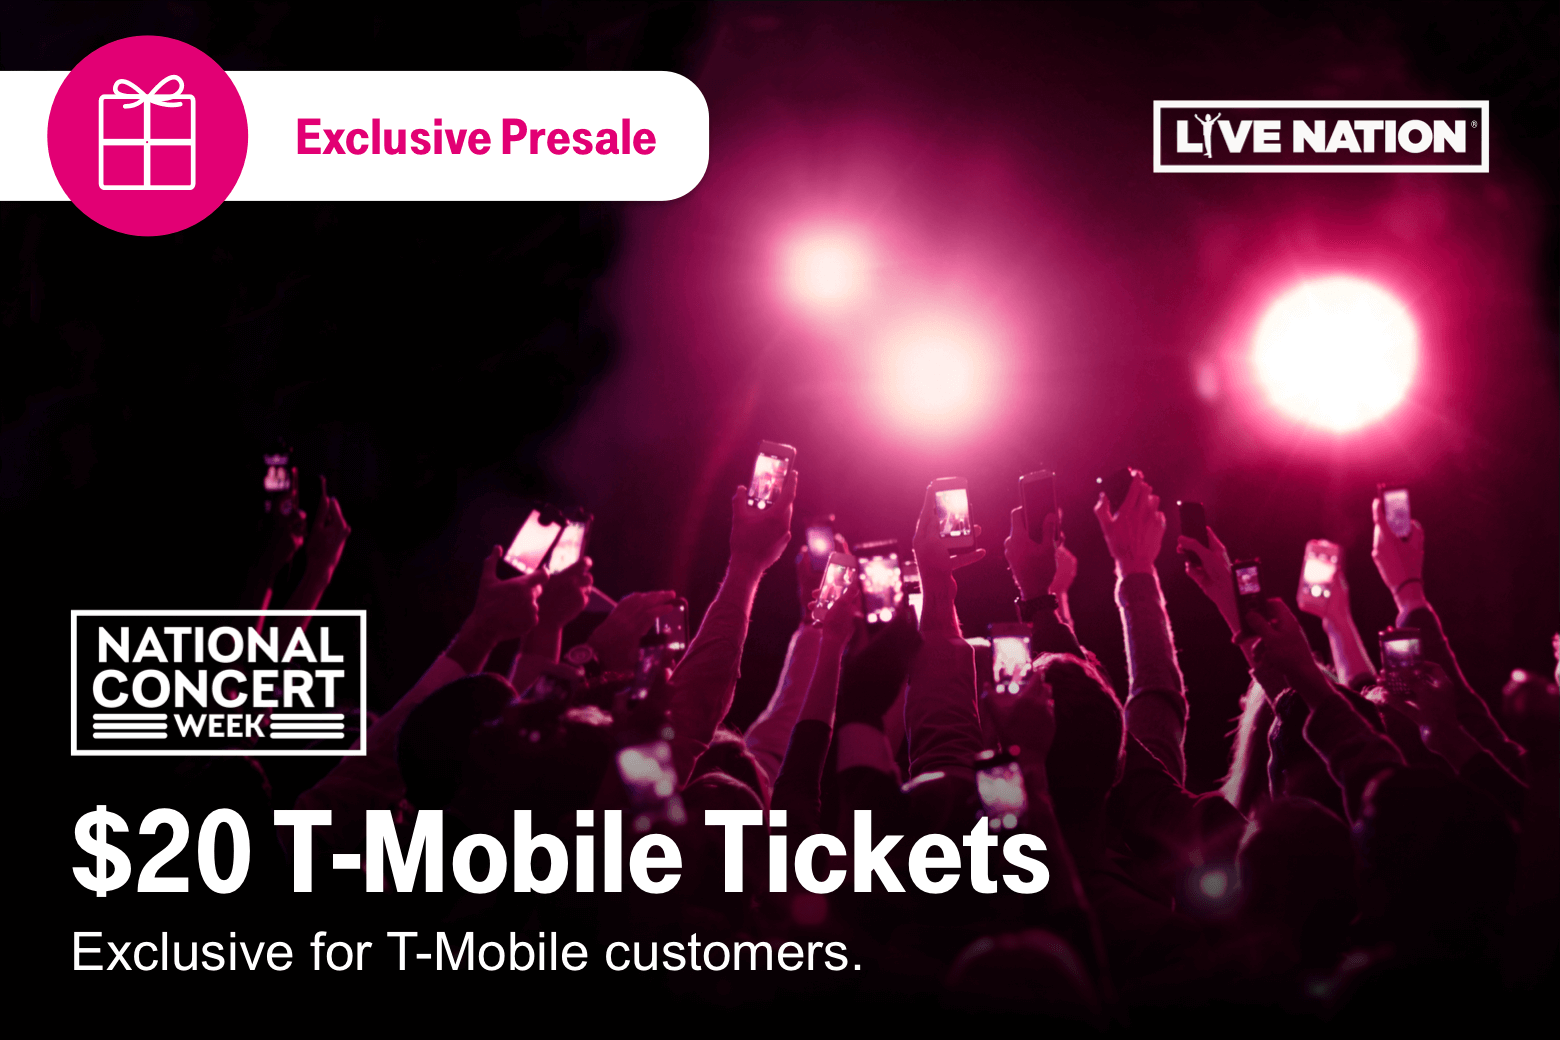 Live Nation. Exclusive Presale. National Concert Week. Twenty Dollar T-Mobile Tickets. Exclusive for T-Mobile Customers.